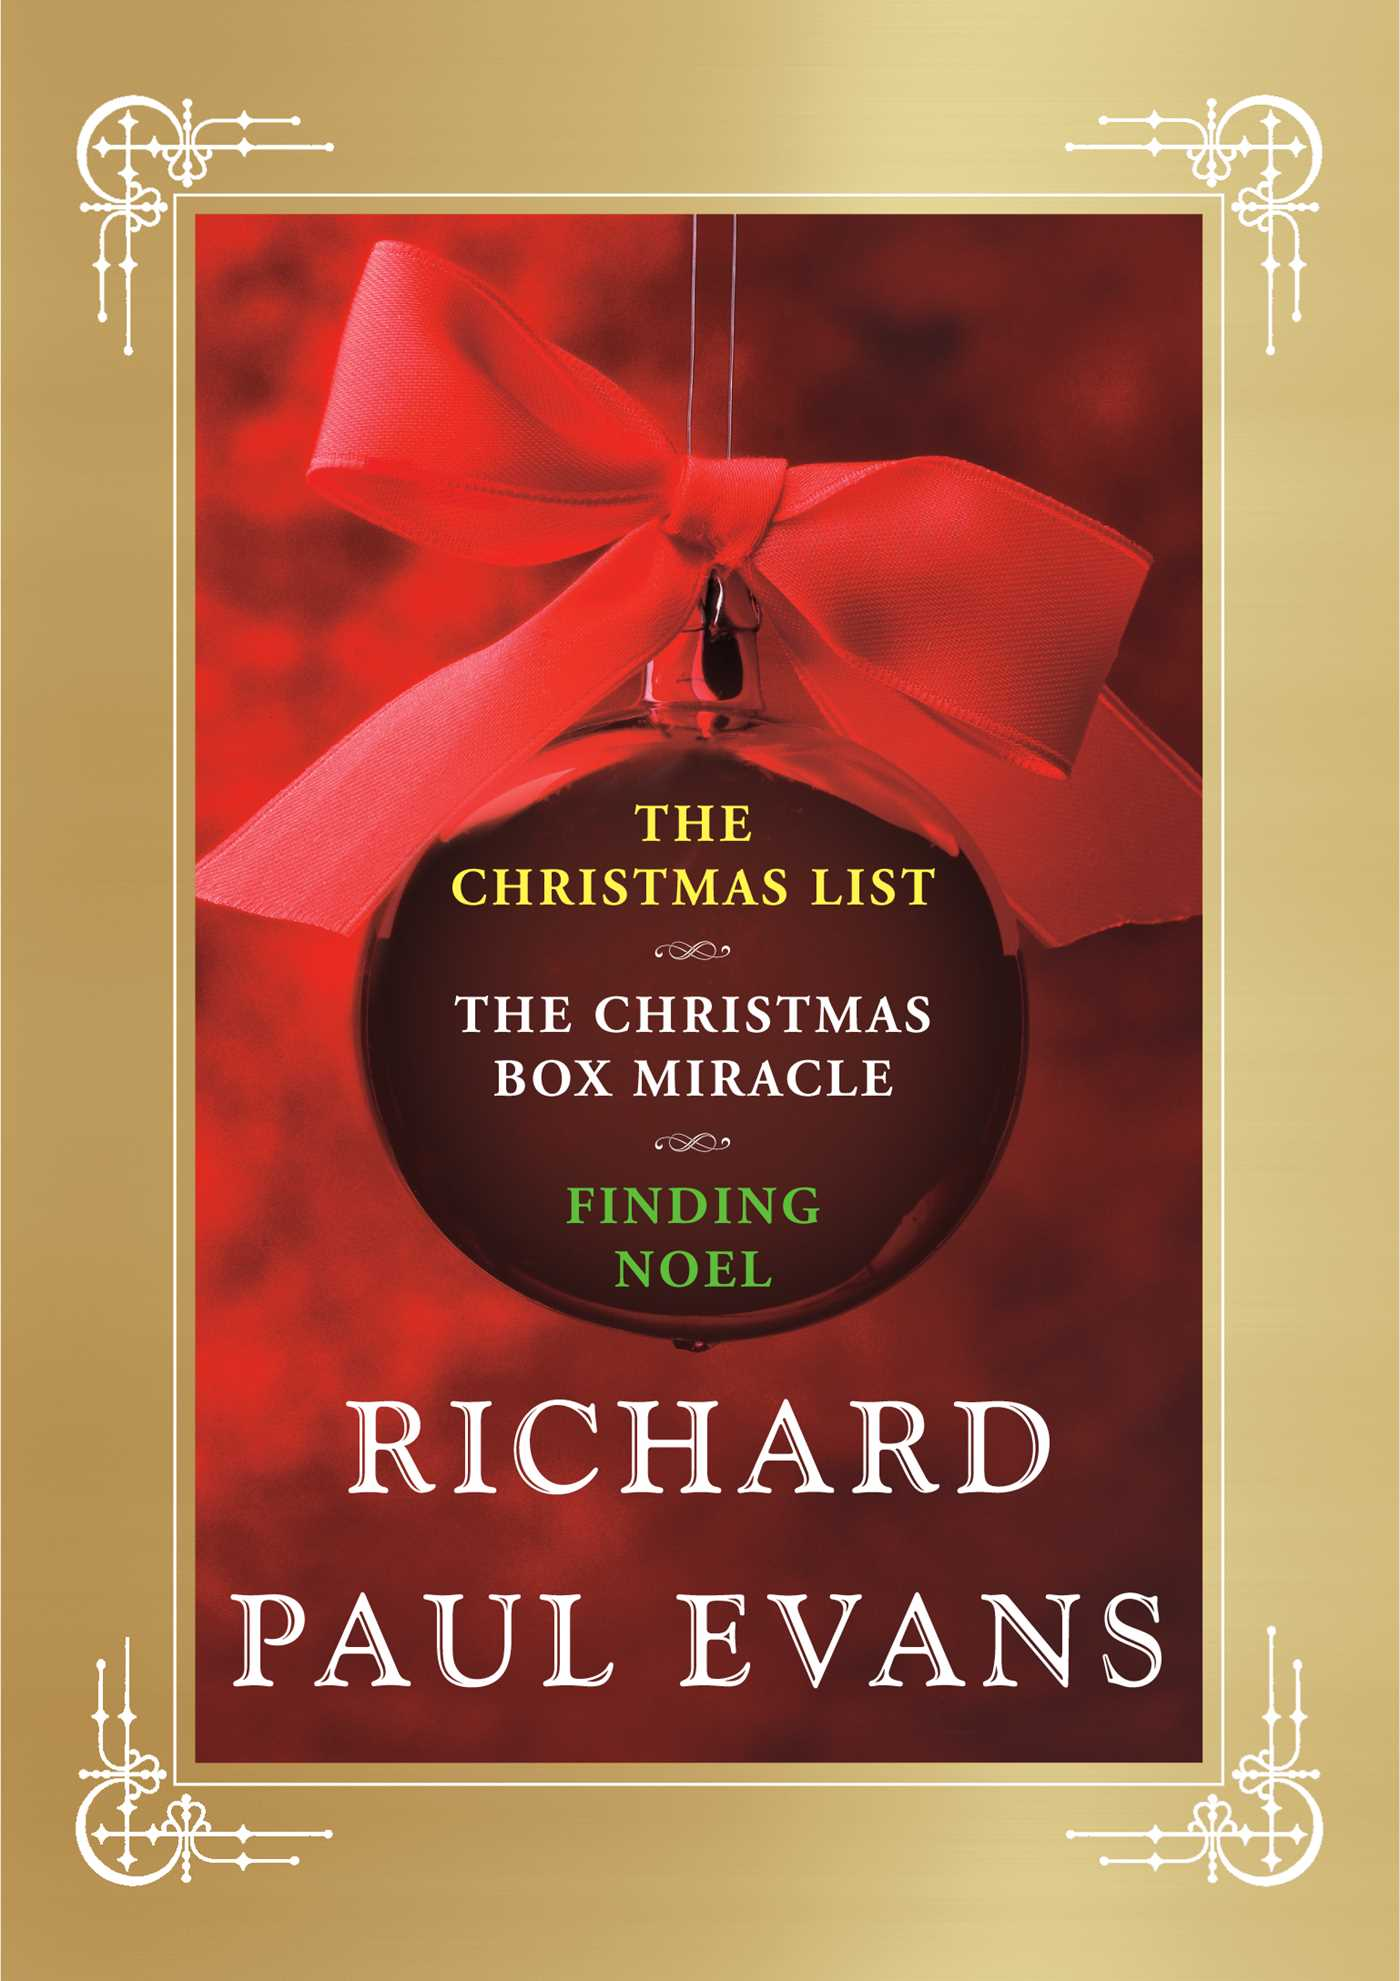 Richard paul evans ebook christmas set 9781451640144 hr